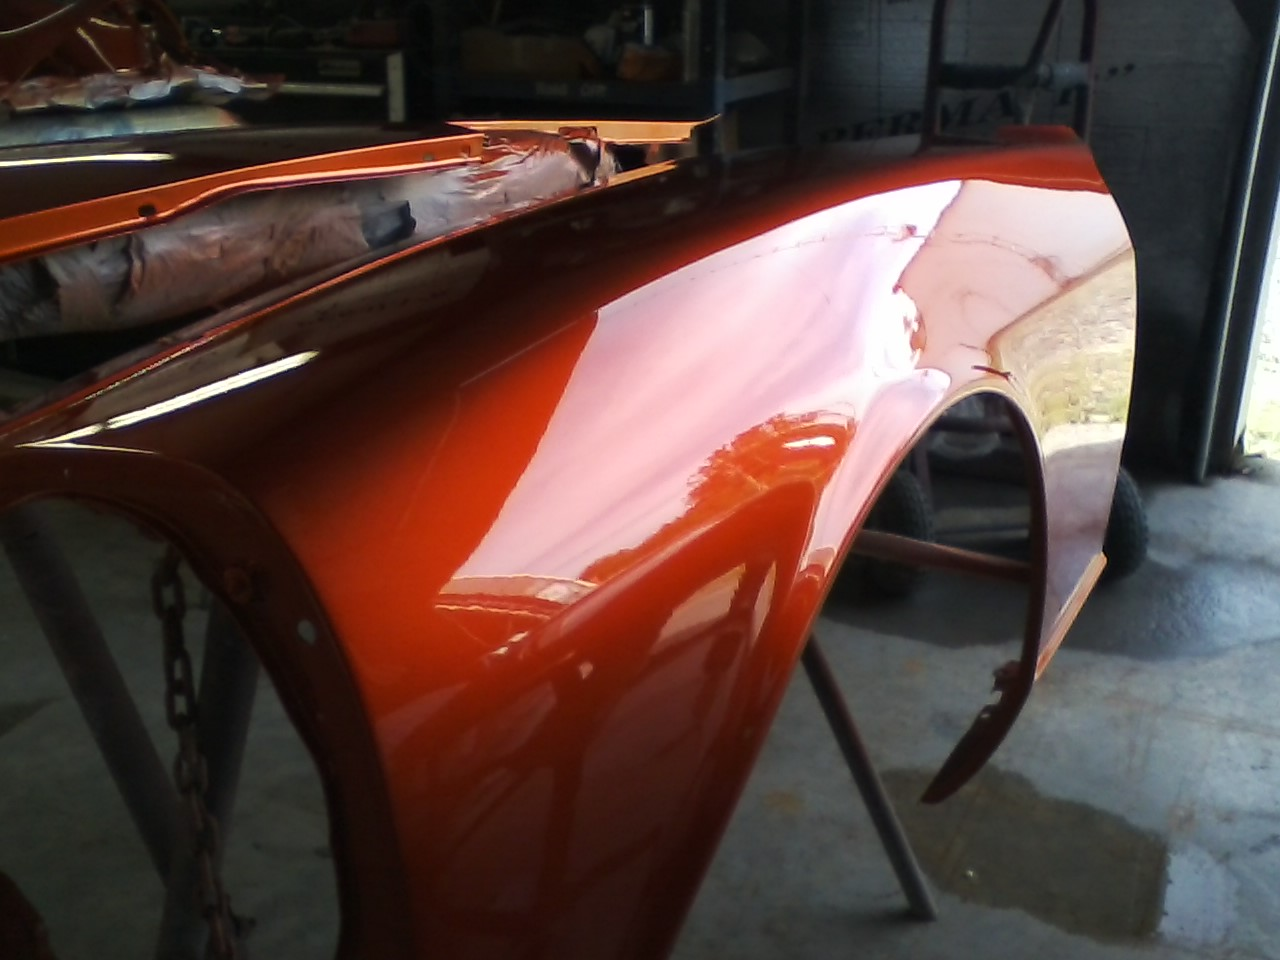 240Z getting some more paint